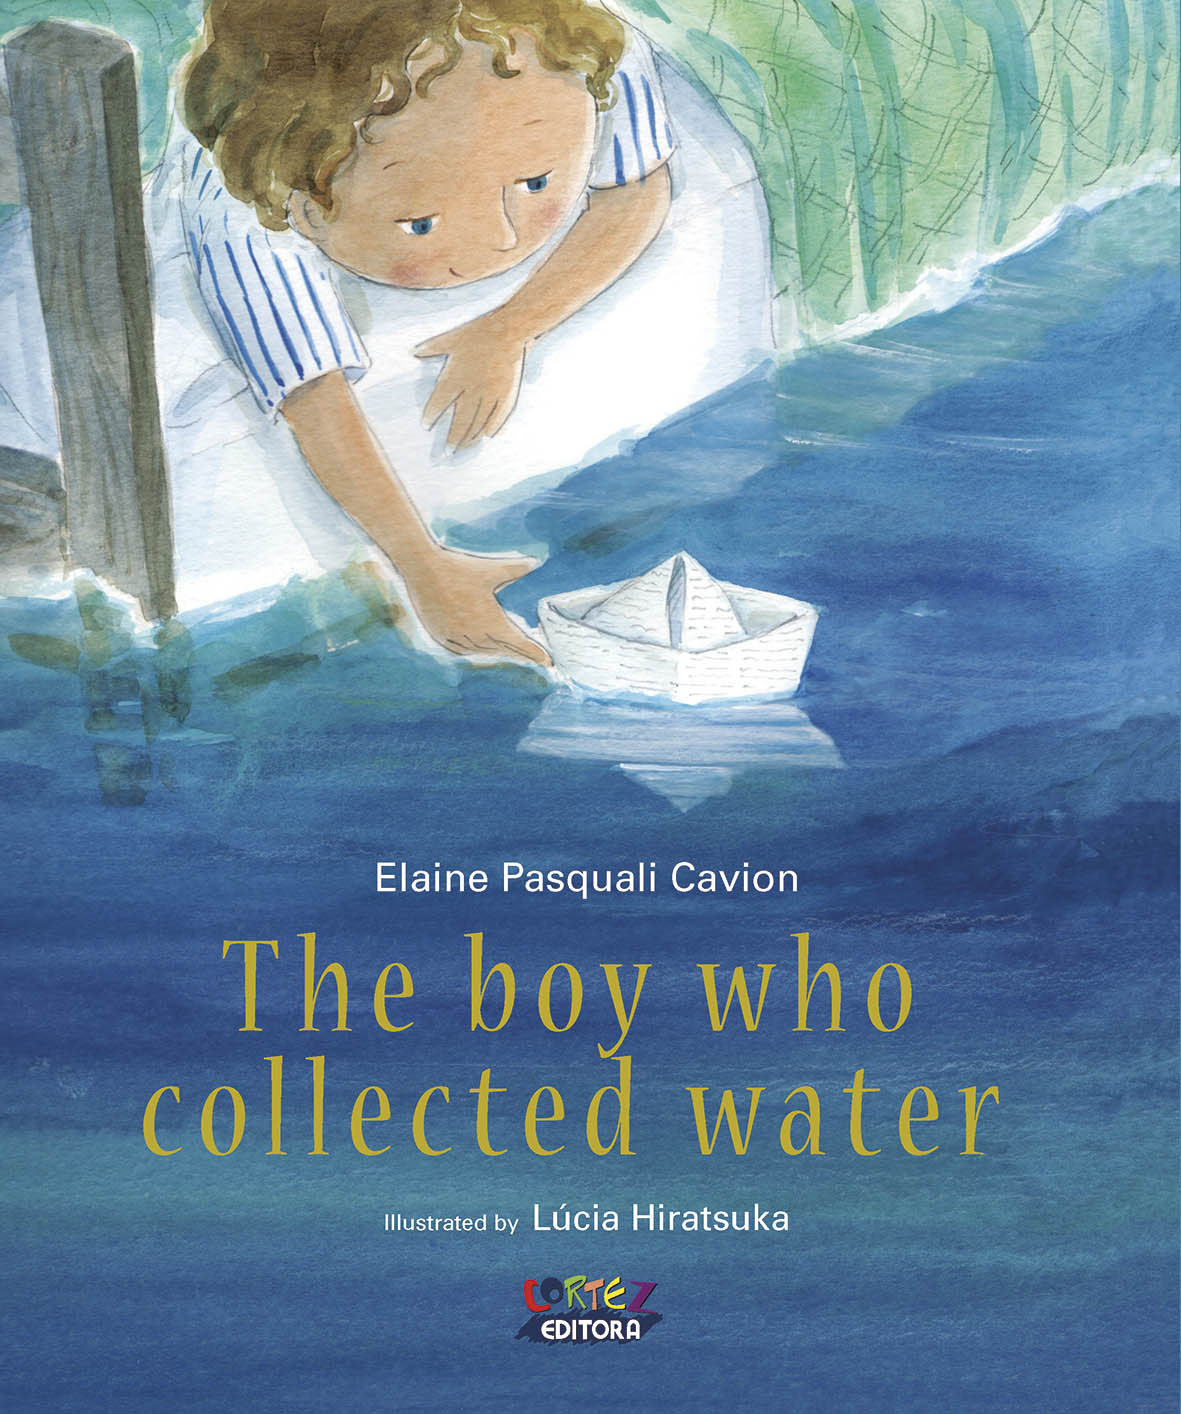 THE BOY WHO COLLECTED WATER